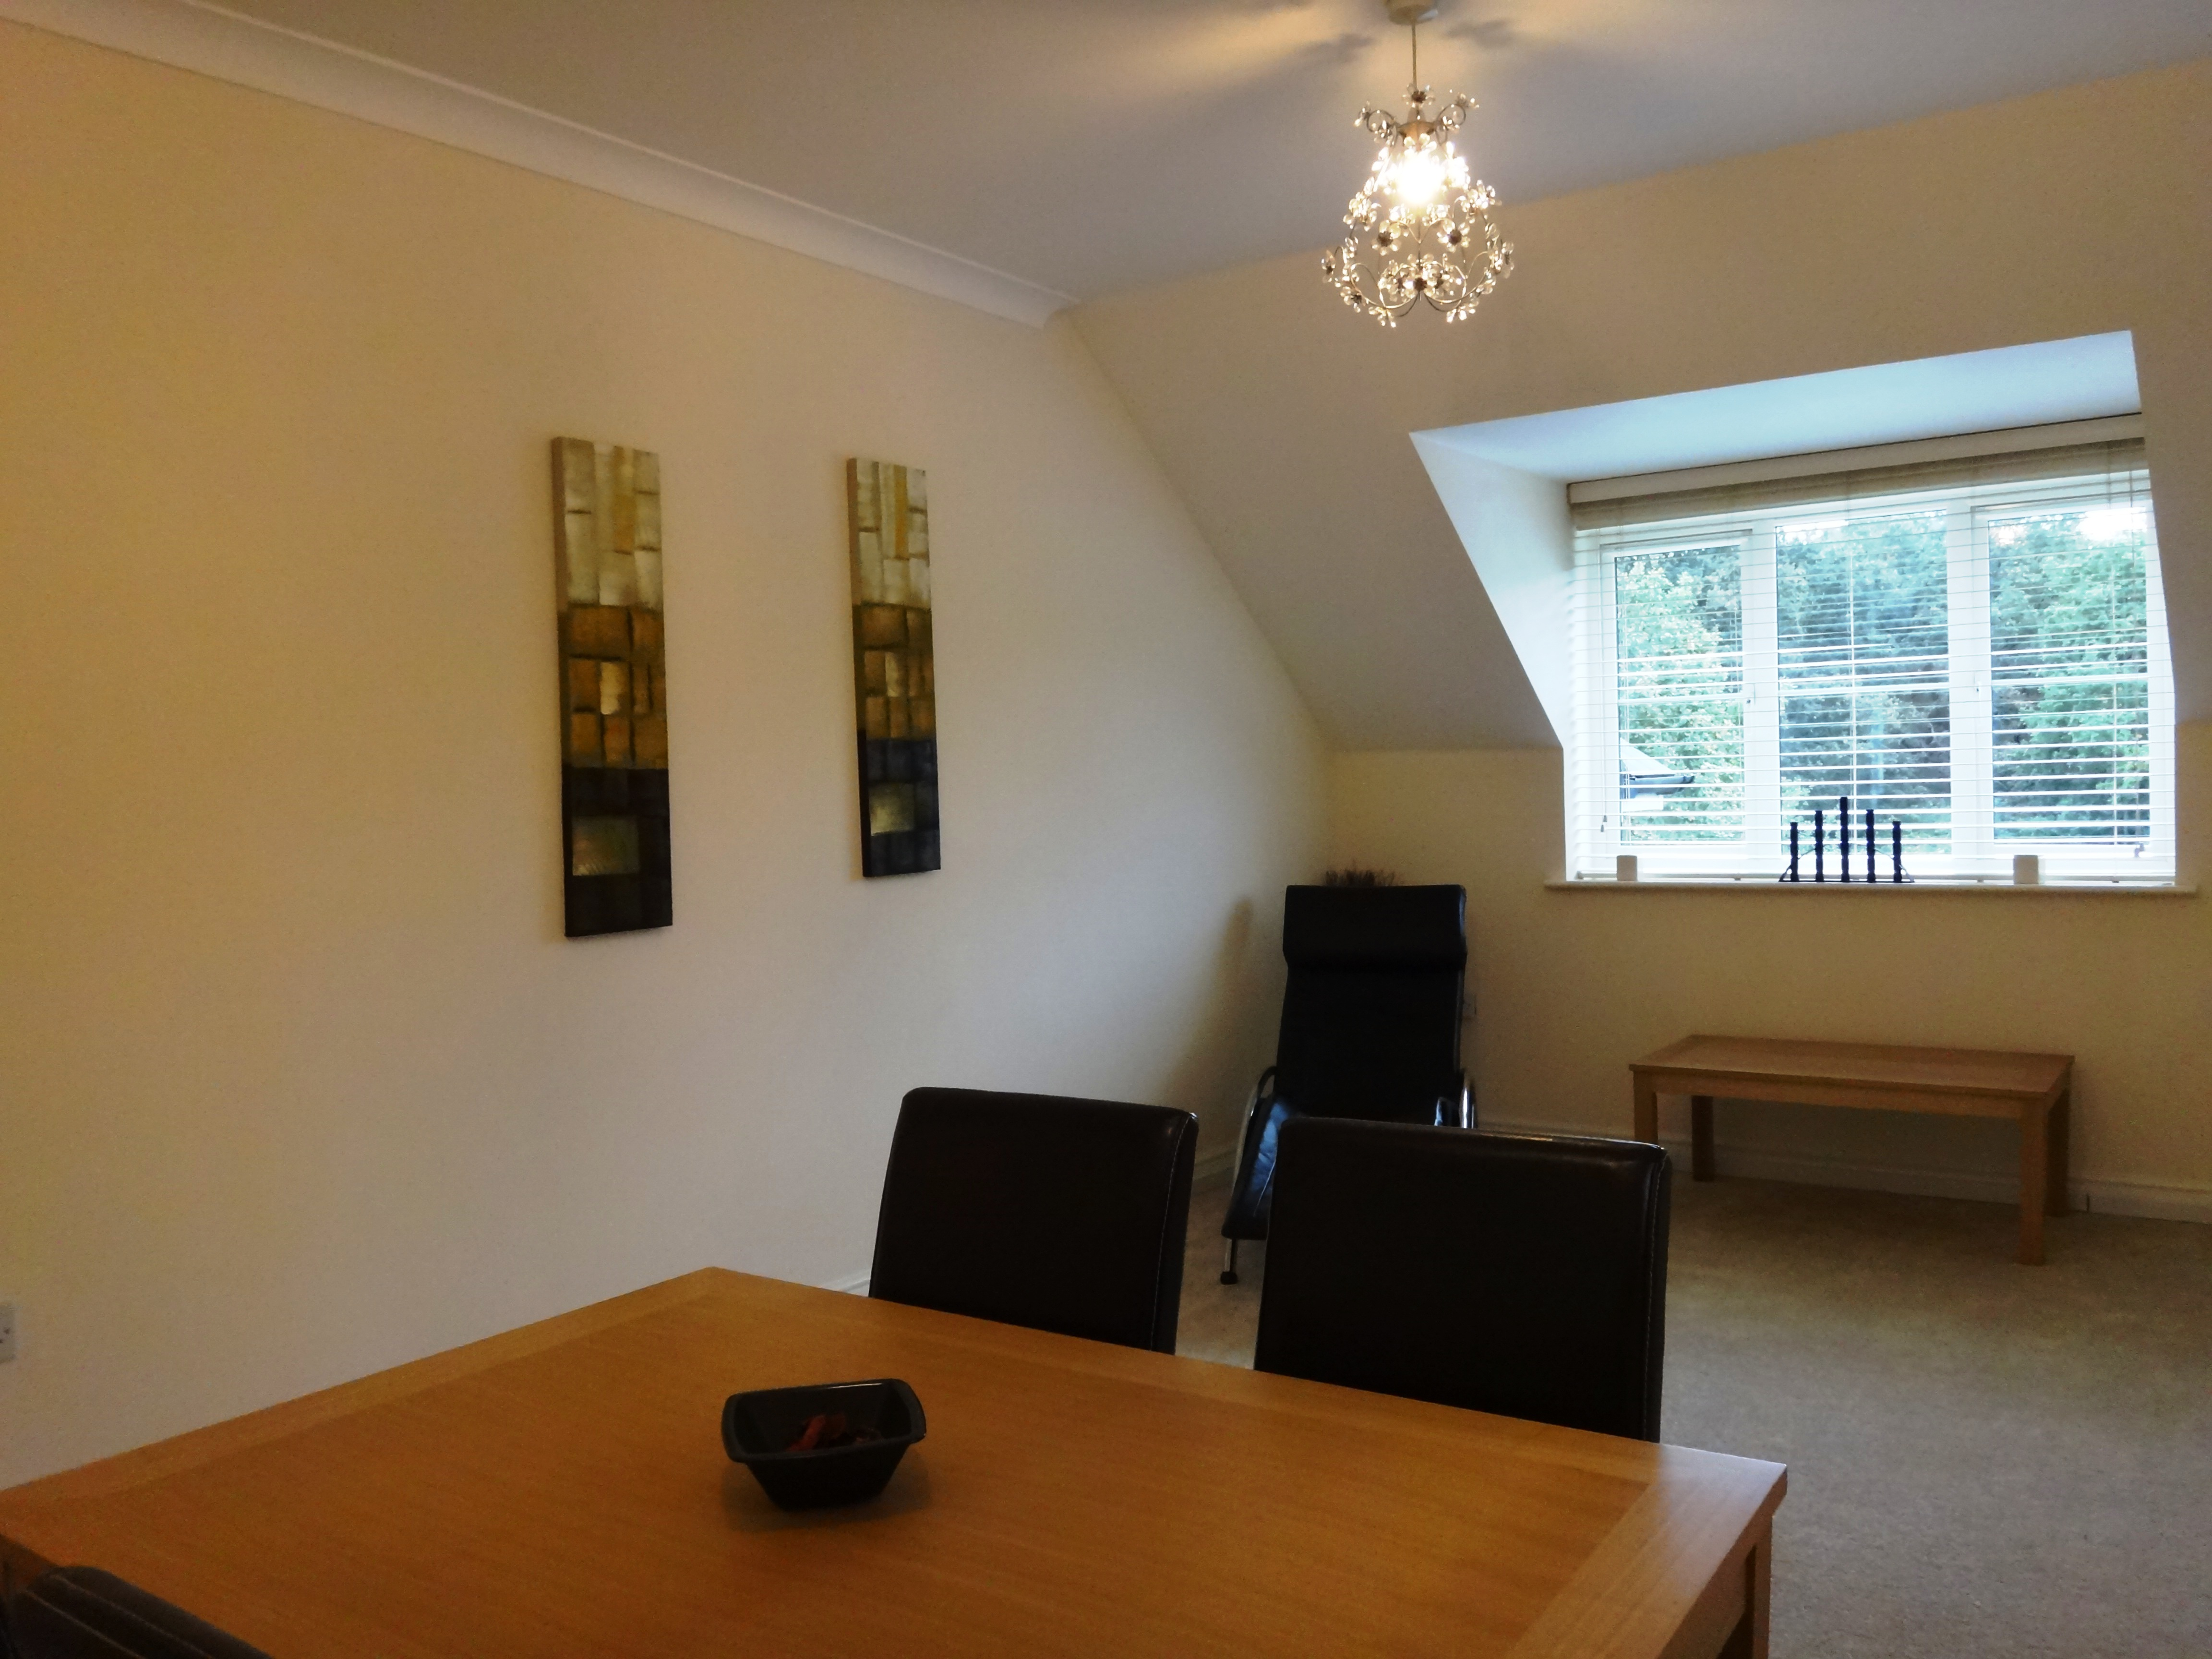 2 Bedroom Flat To Rent In Perivale Middlesex UB6 London